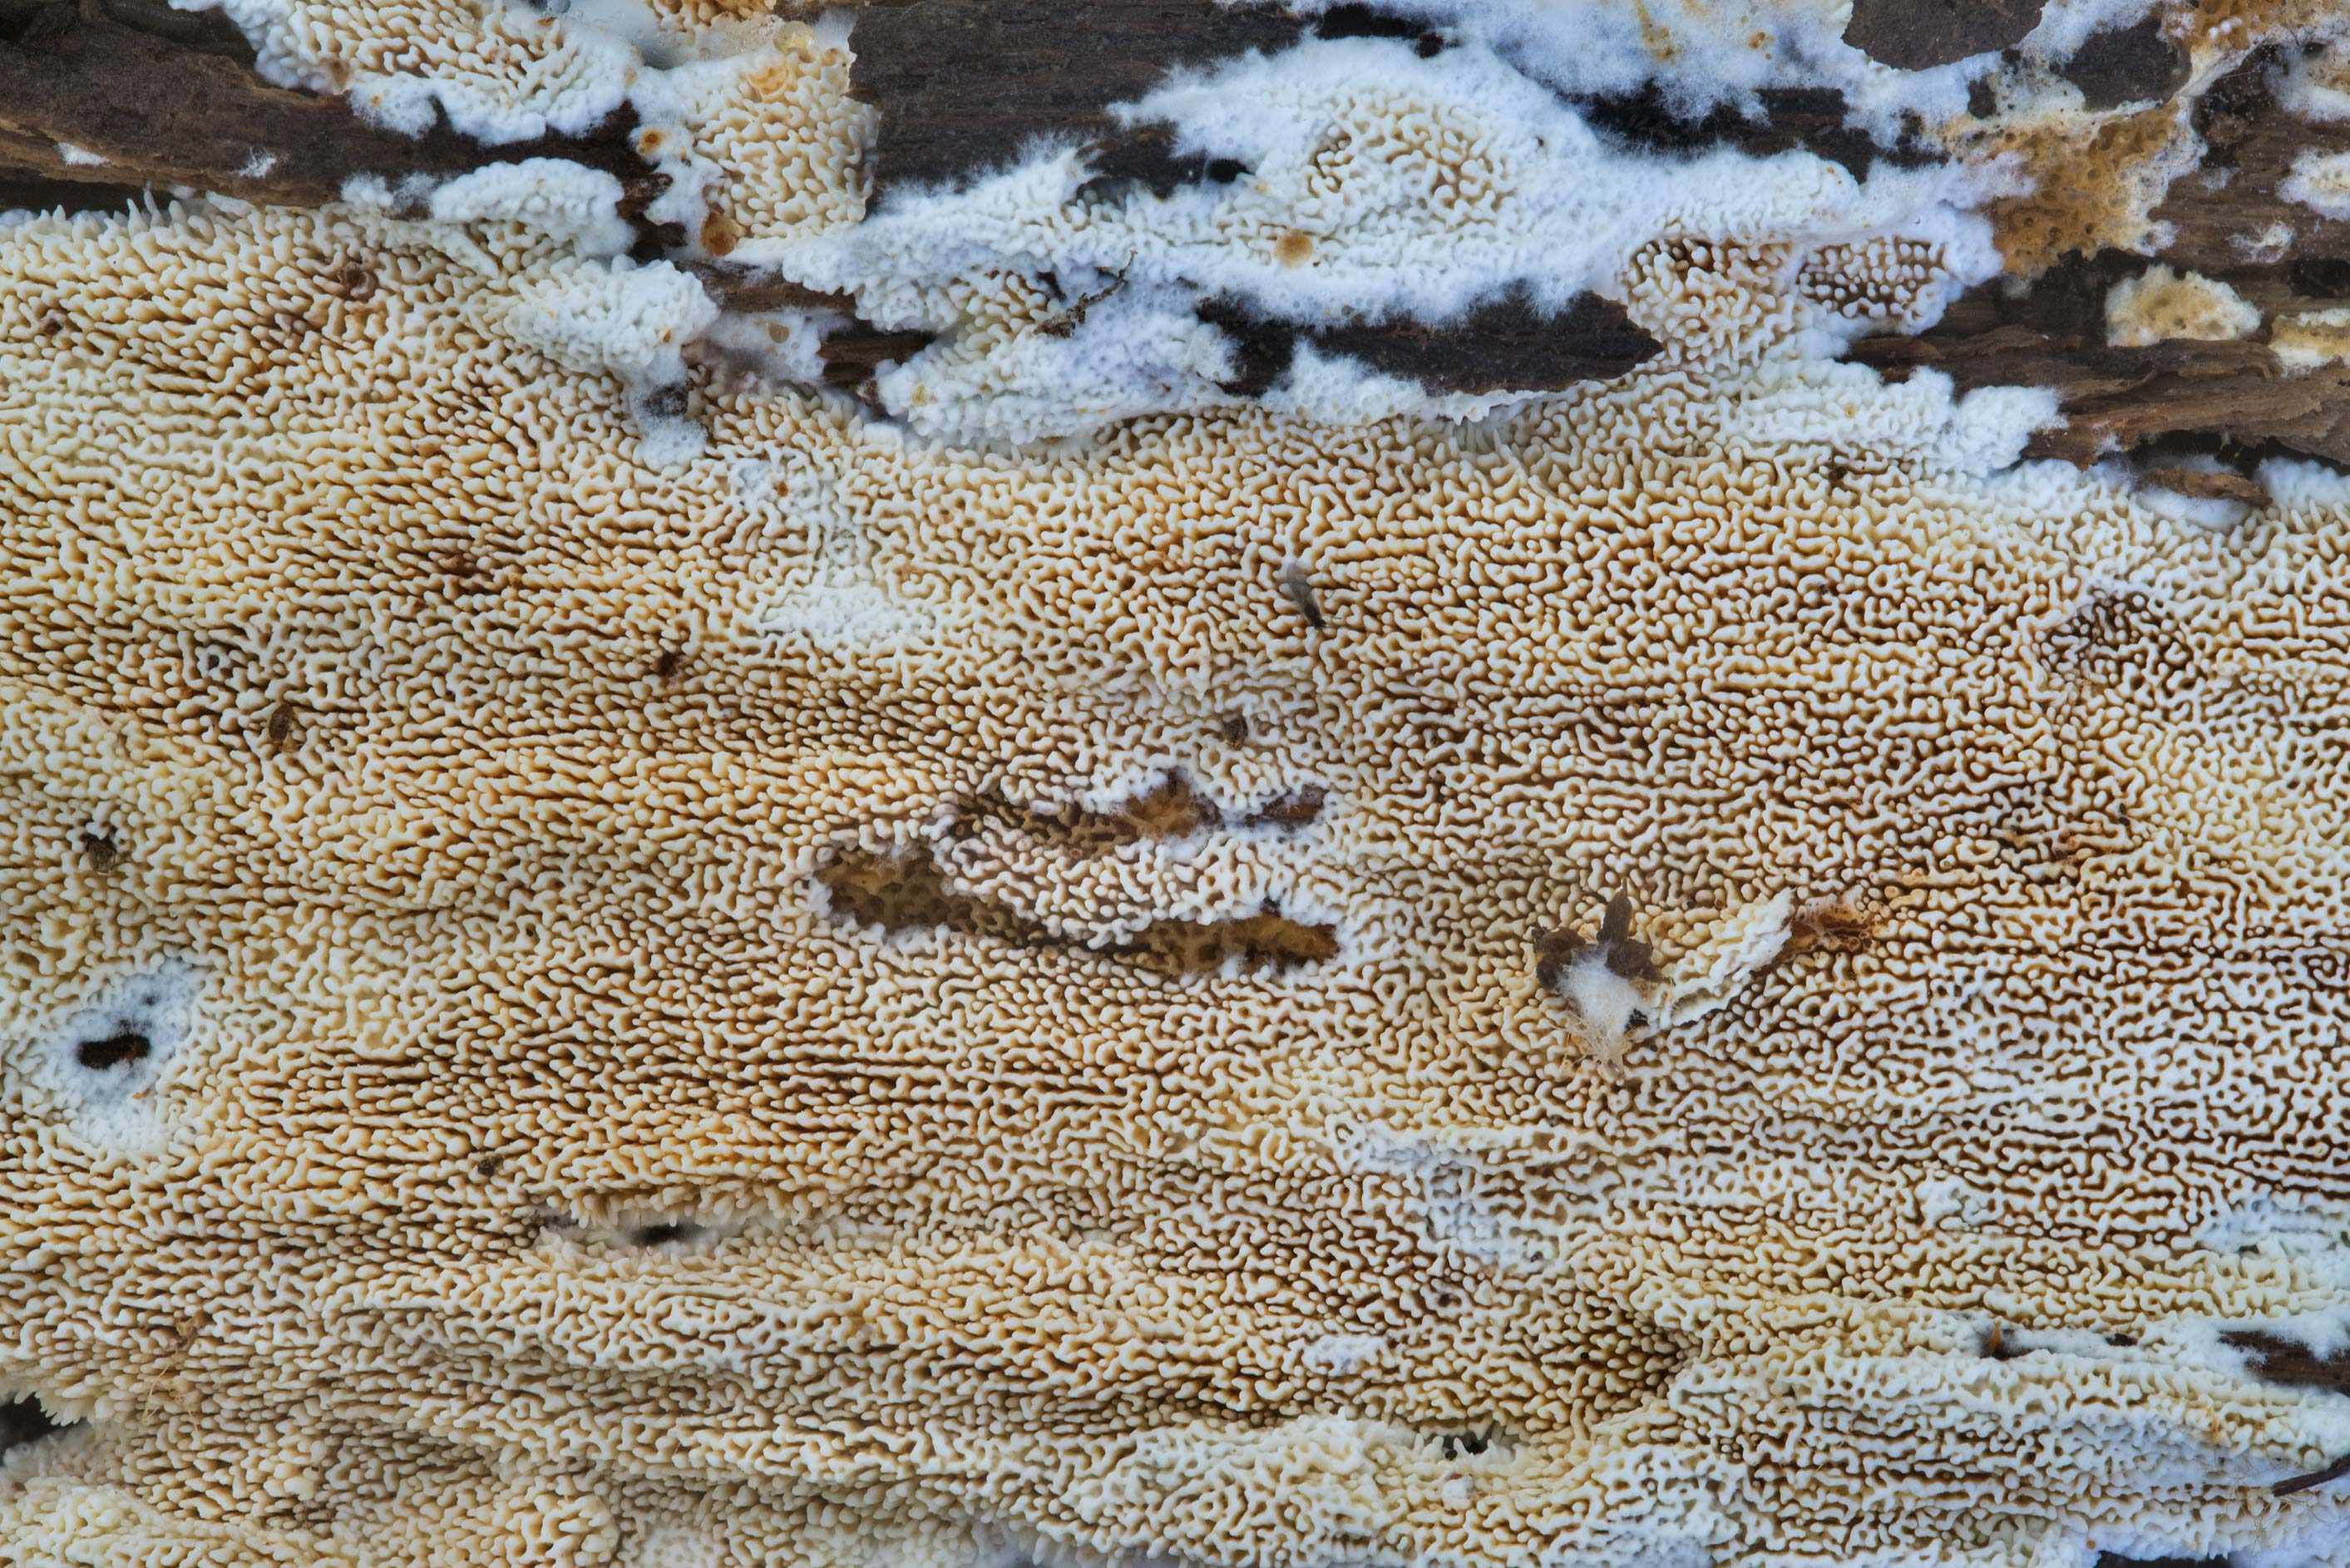 Pattern of crust fungus (Corticiaceae) on rotting...Creek Park. College Station, Texas